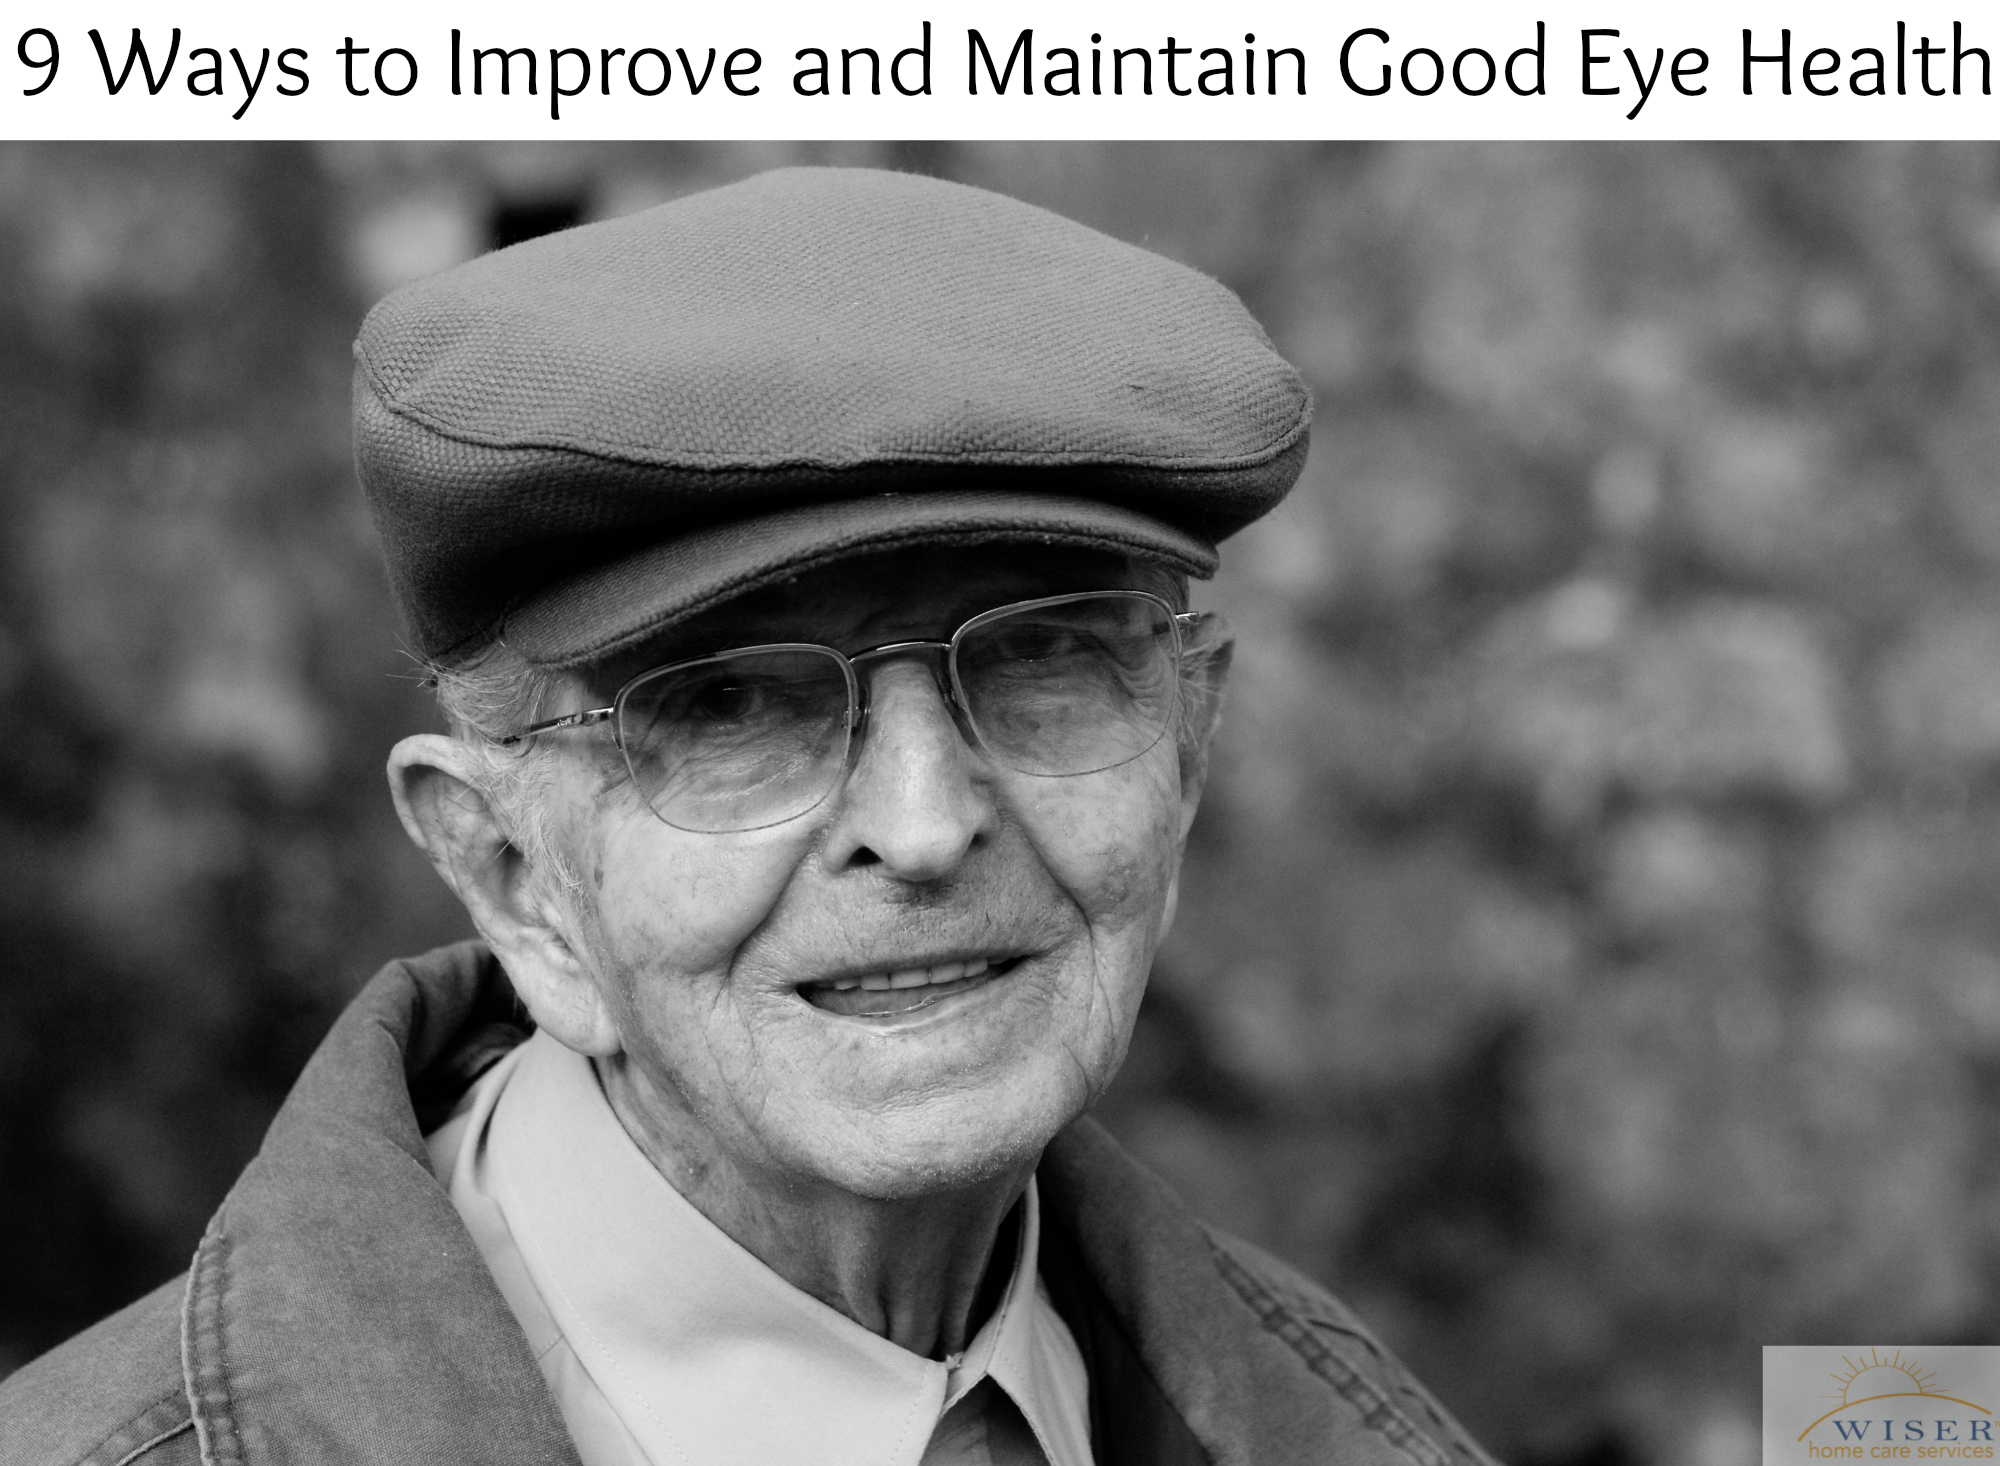 As we age it is normal for our eyesight to be negatively impacted. Our caregivers discuss top eye issues and how to maintain eye health in this blog.